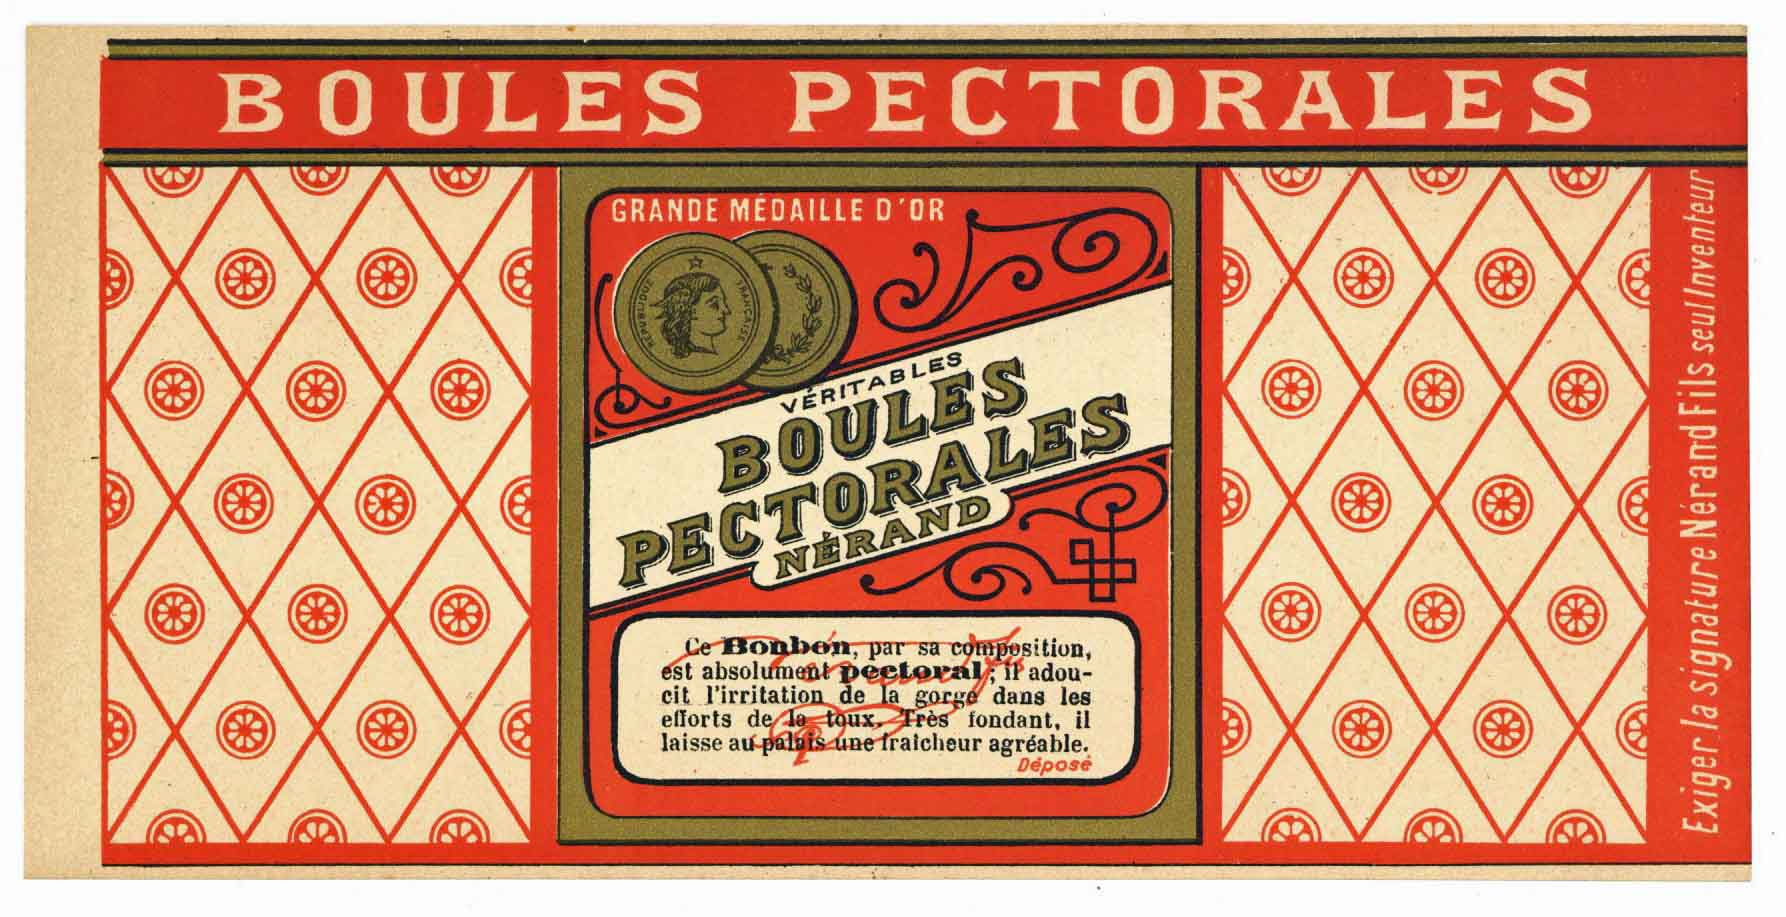 Boules Pectorales Brand Vintage French Candy Can Label